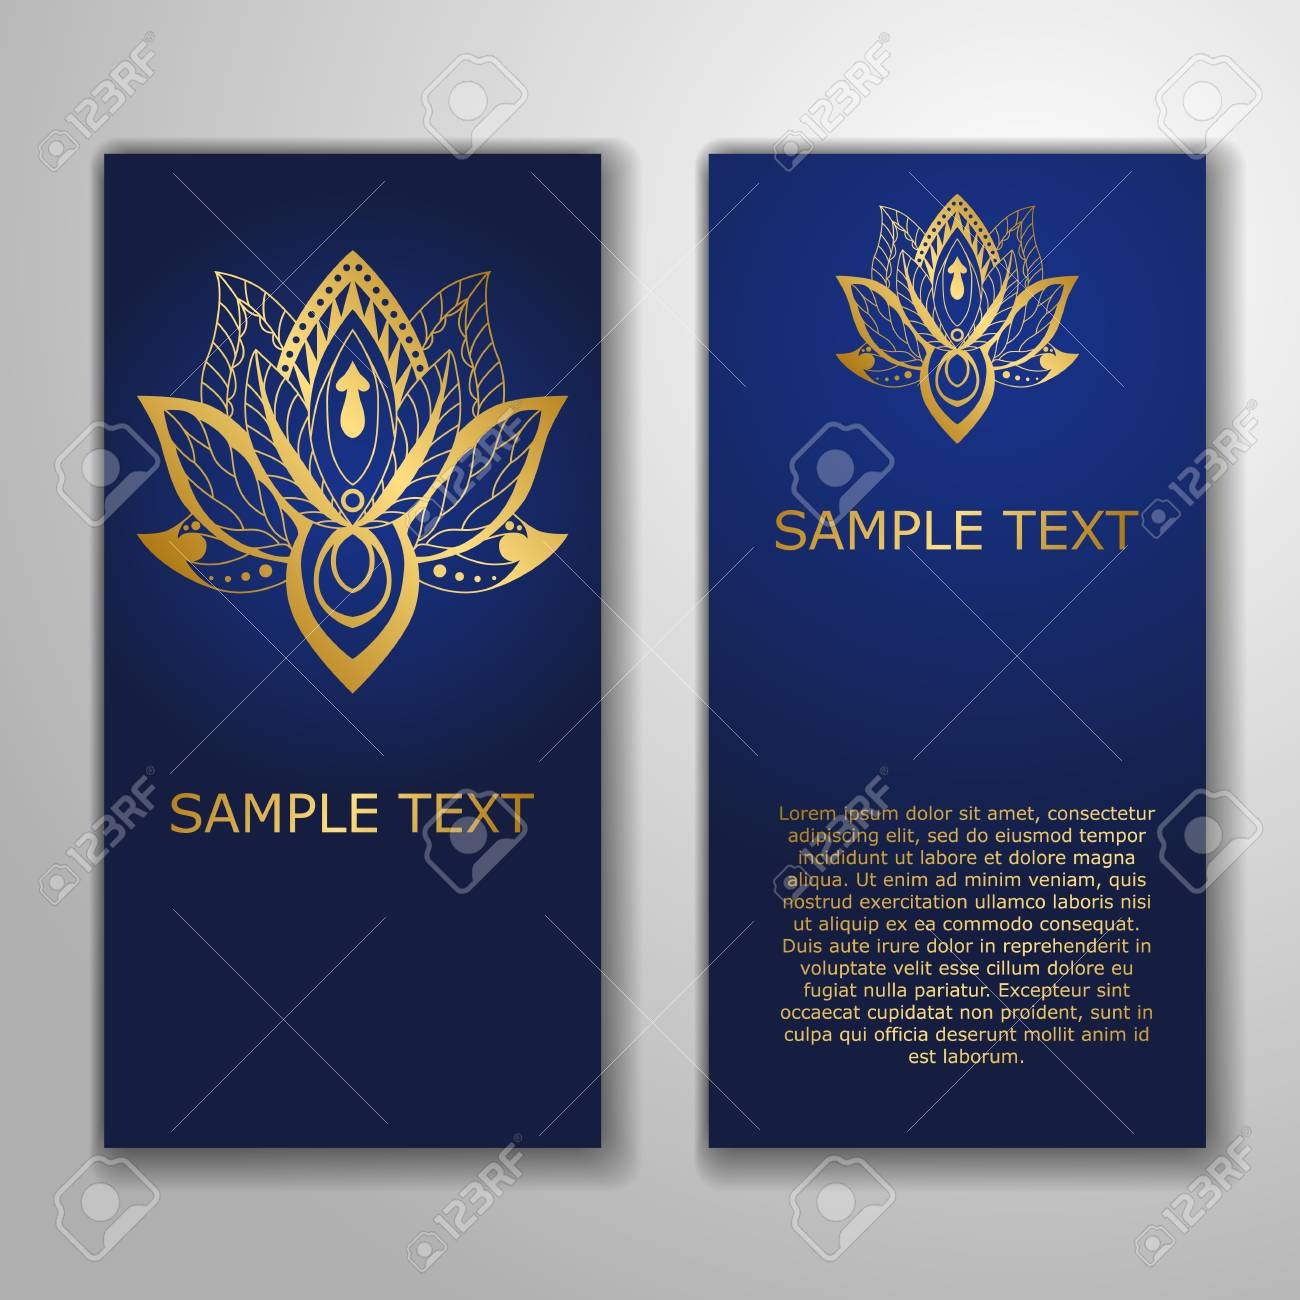 Cards Template For Yoga Studio With Golden Lotuses Yoga Vertical